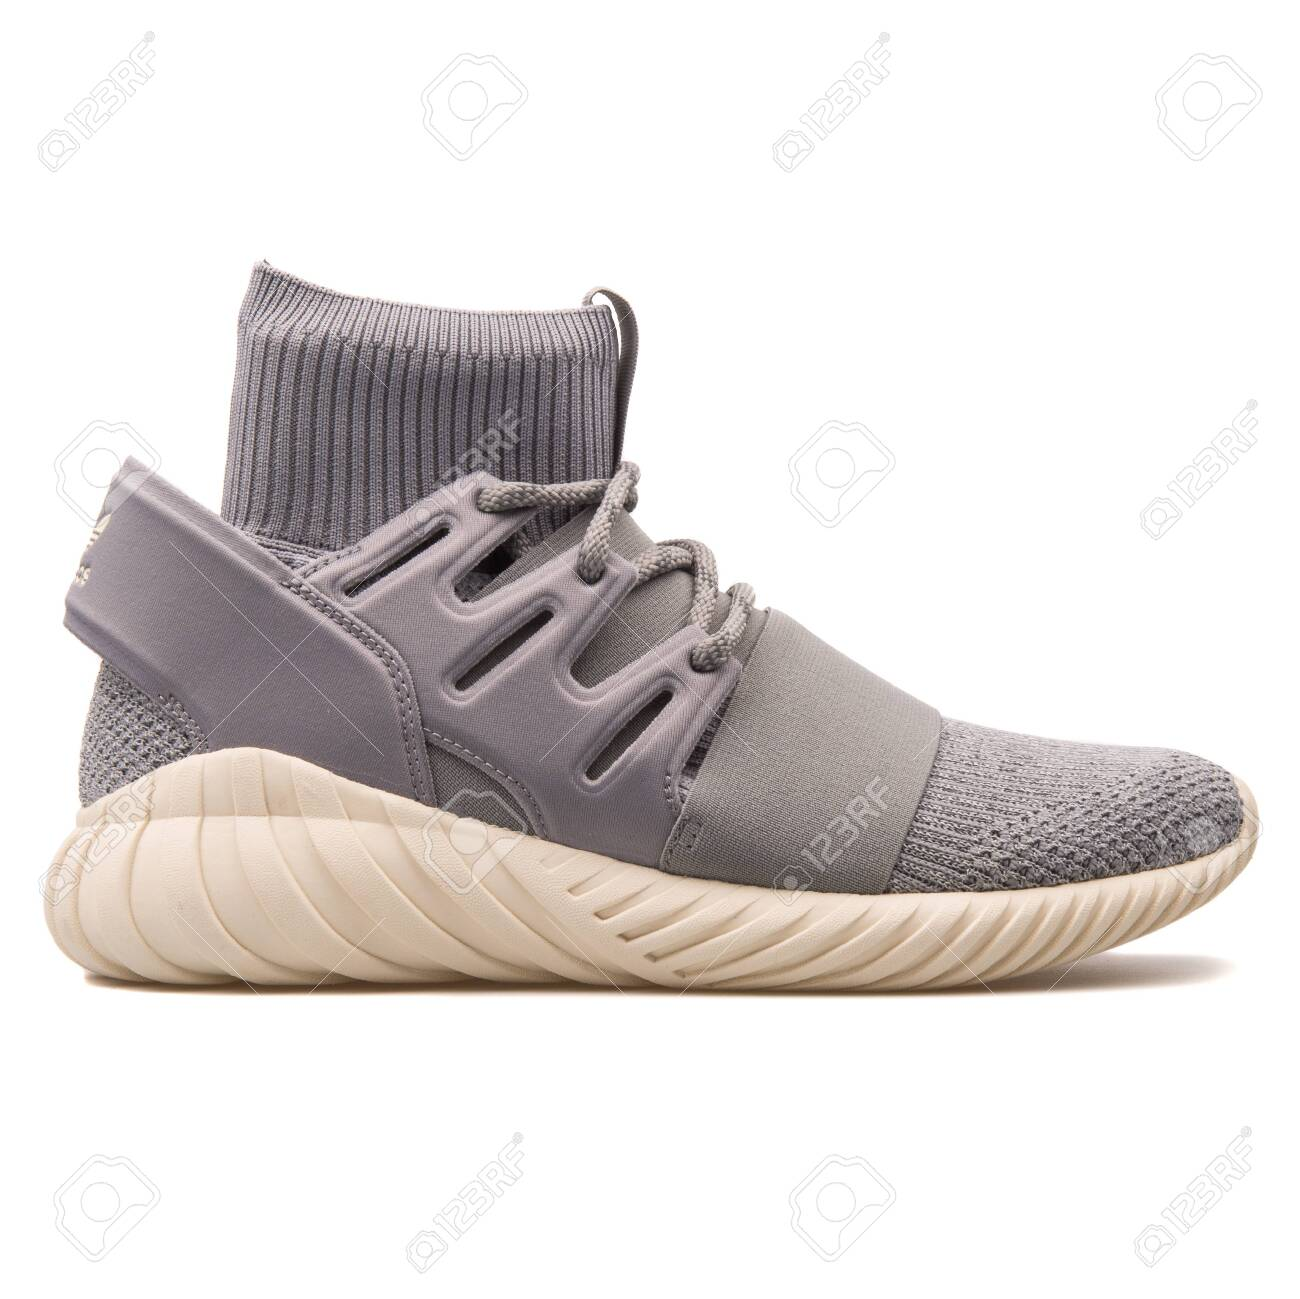 best website 7d167 e0227 VIENNA, AUSTRIA - AUGUST 10, 2017: Adidas Tubular Doom PK grey..